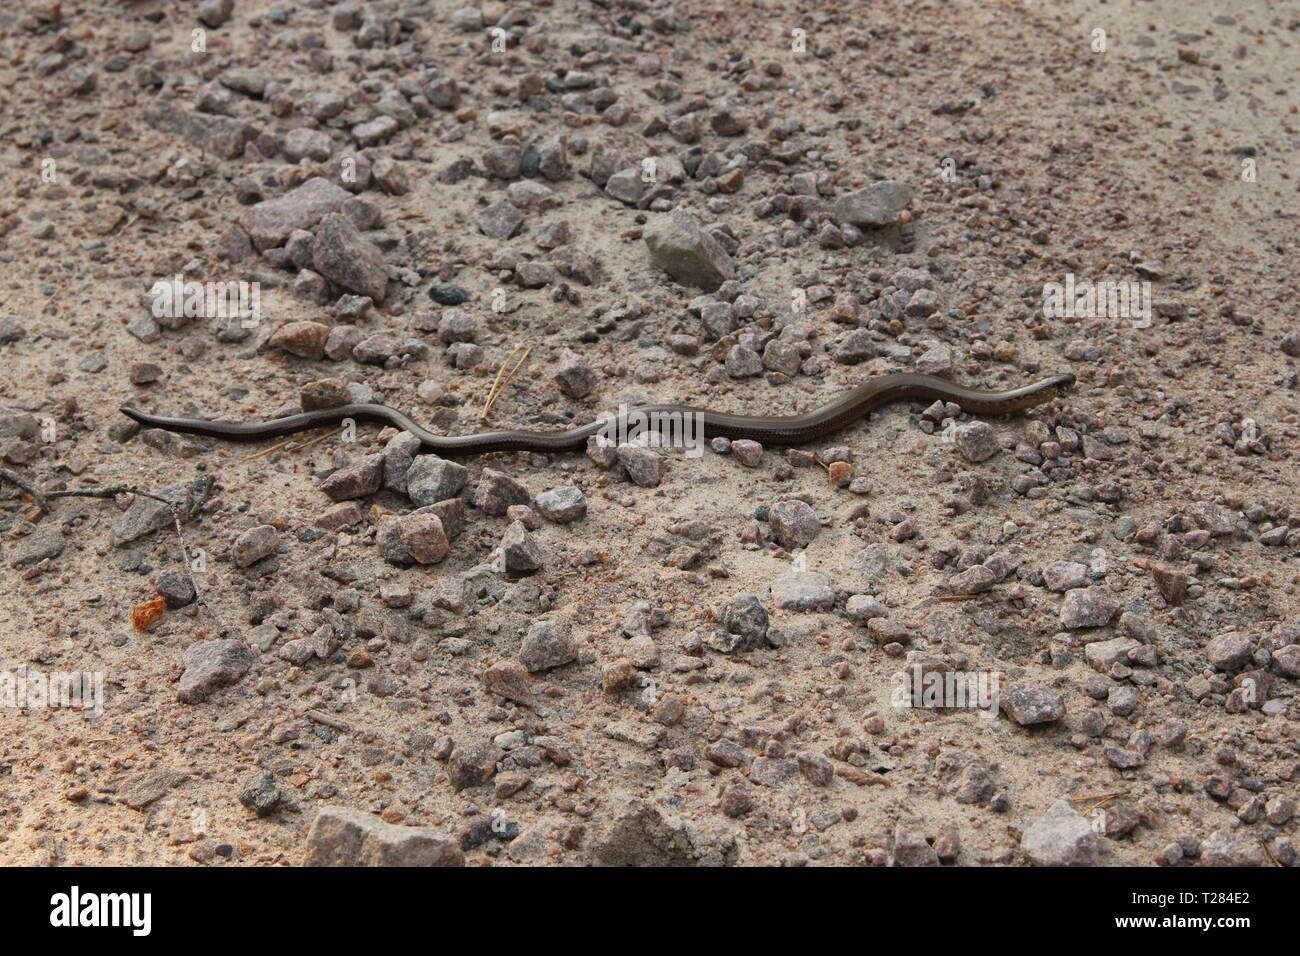 Anguis fragilis on a gravel road - Stock Image